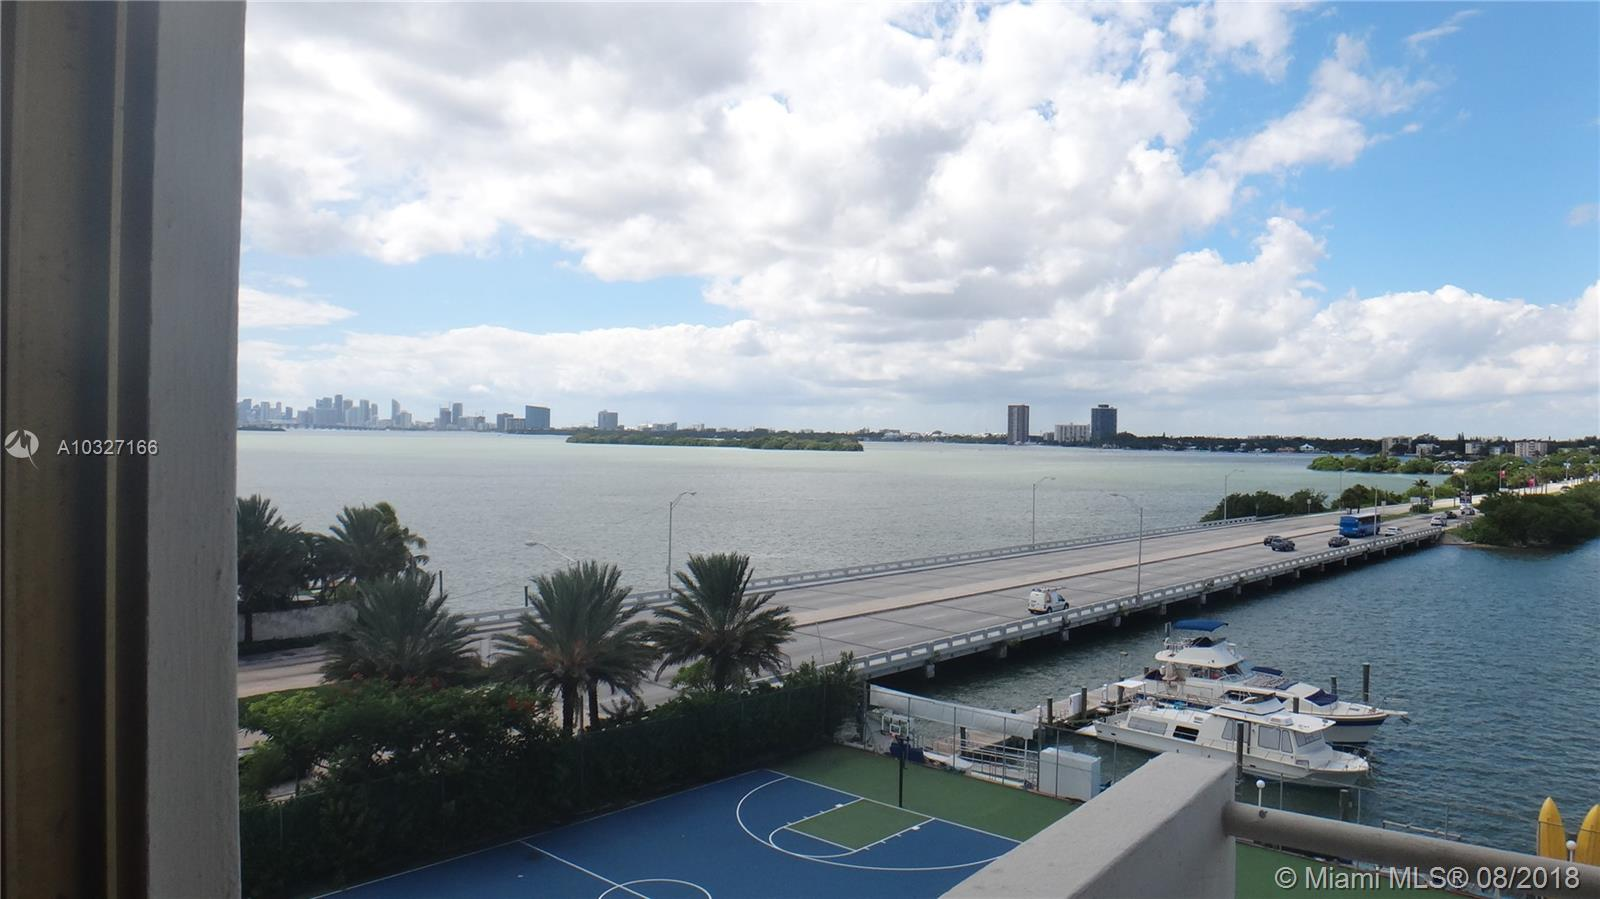 7904 west # 502, North Bay Village, Florida 33141, 1 Bedroom Bedrooms, ,1 BathroomBathrooms,Residential,For Sale,7904 west # 502,A10327166